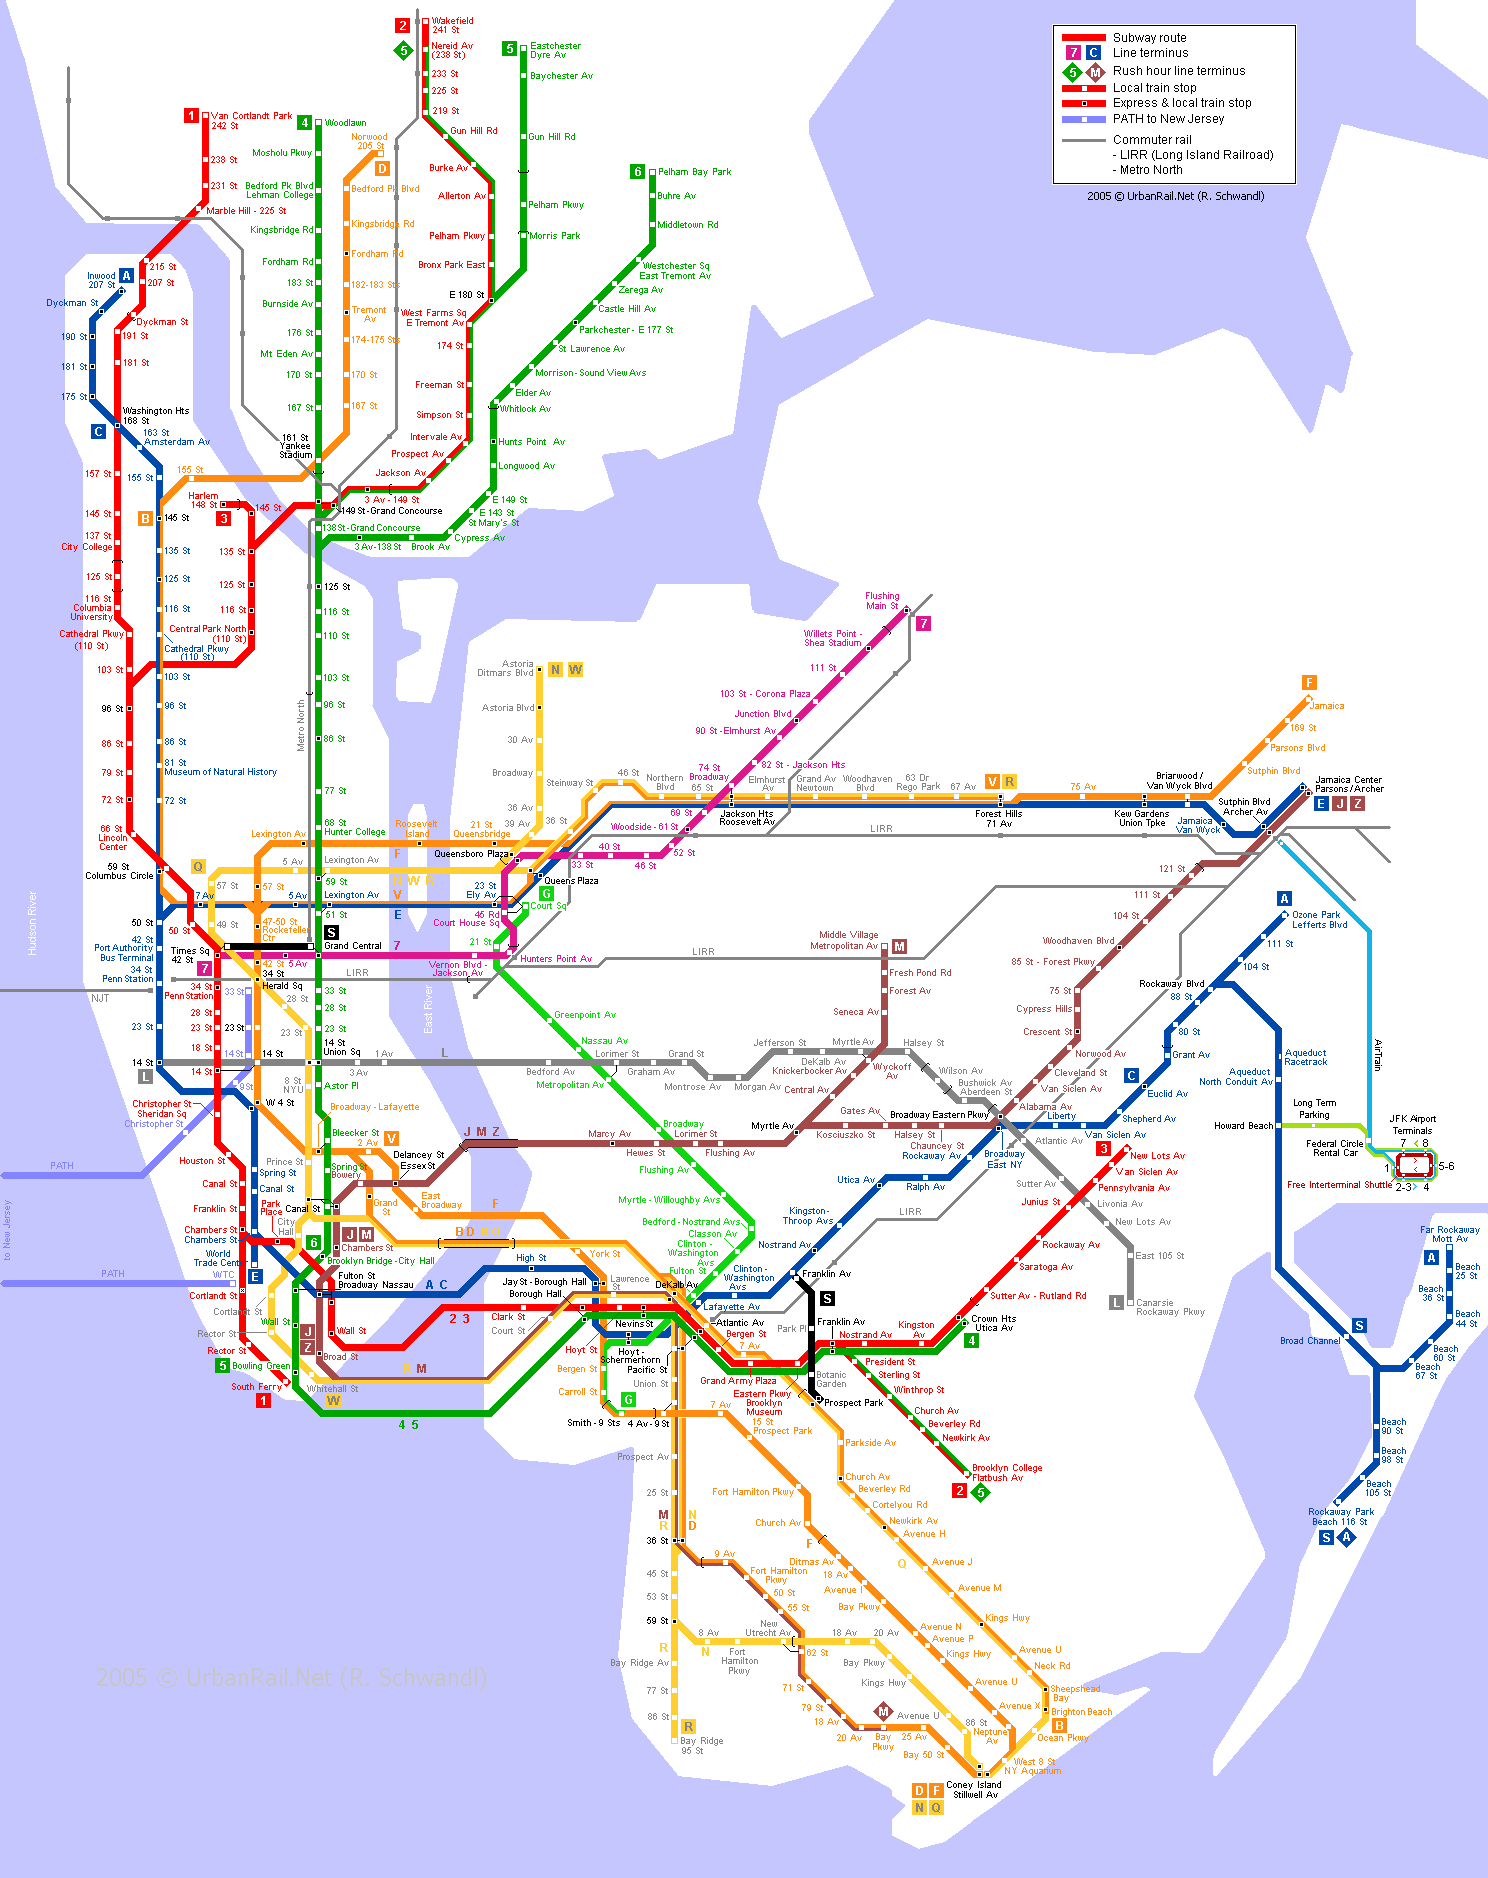 New York And Subway Map.New York Subway Map For Download Metro In New York High